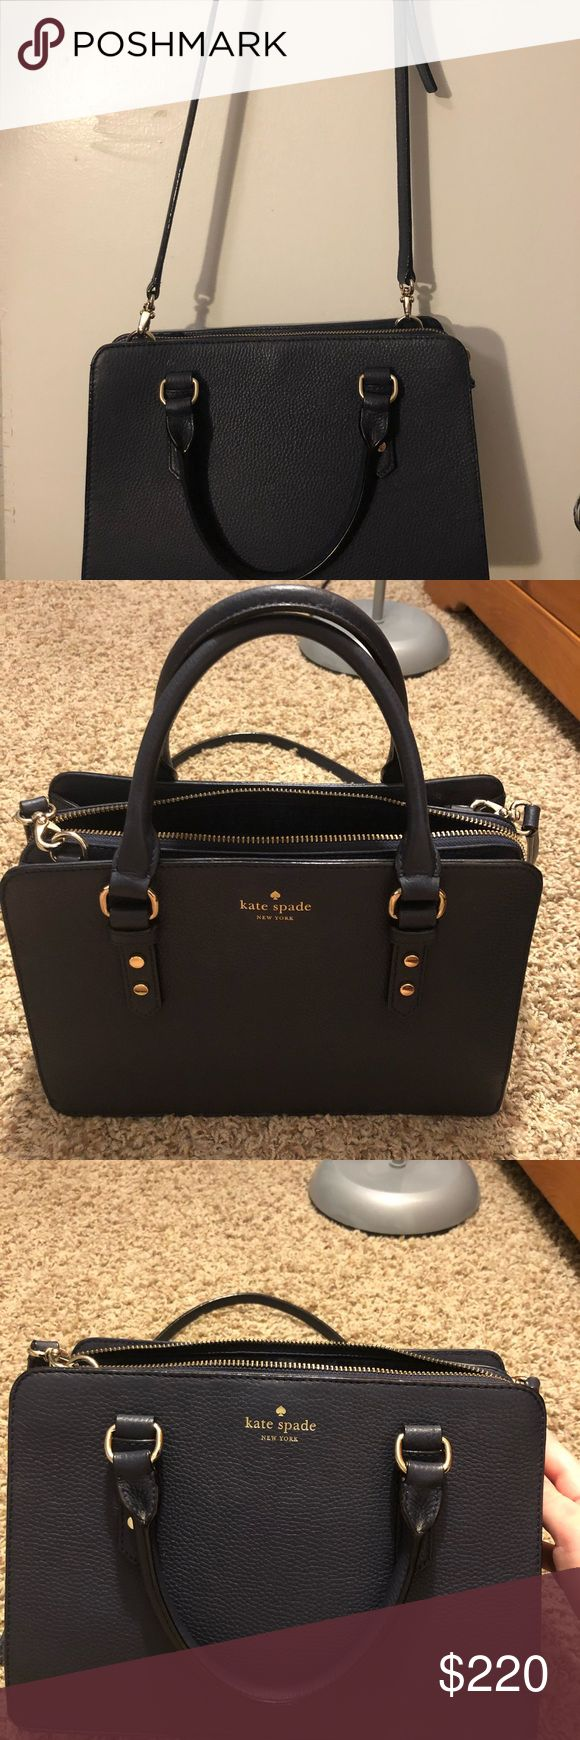 Kate Spade Navy Blue Purse Navy blue handbag or crossbody. Removable strap. Perfect condition. No scratches or fading. kate spade Bags Shoulder Bags